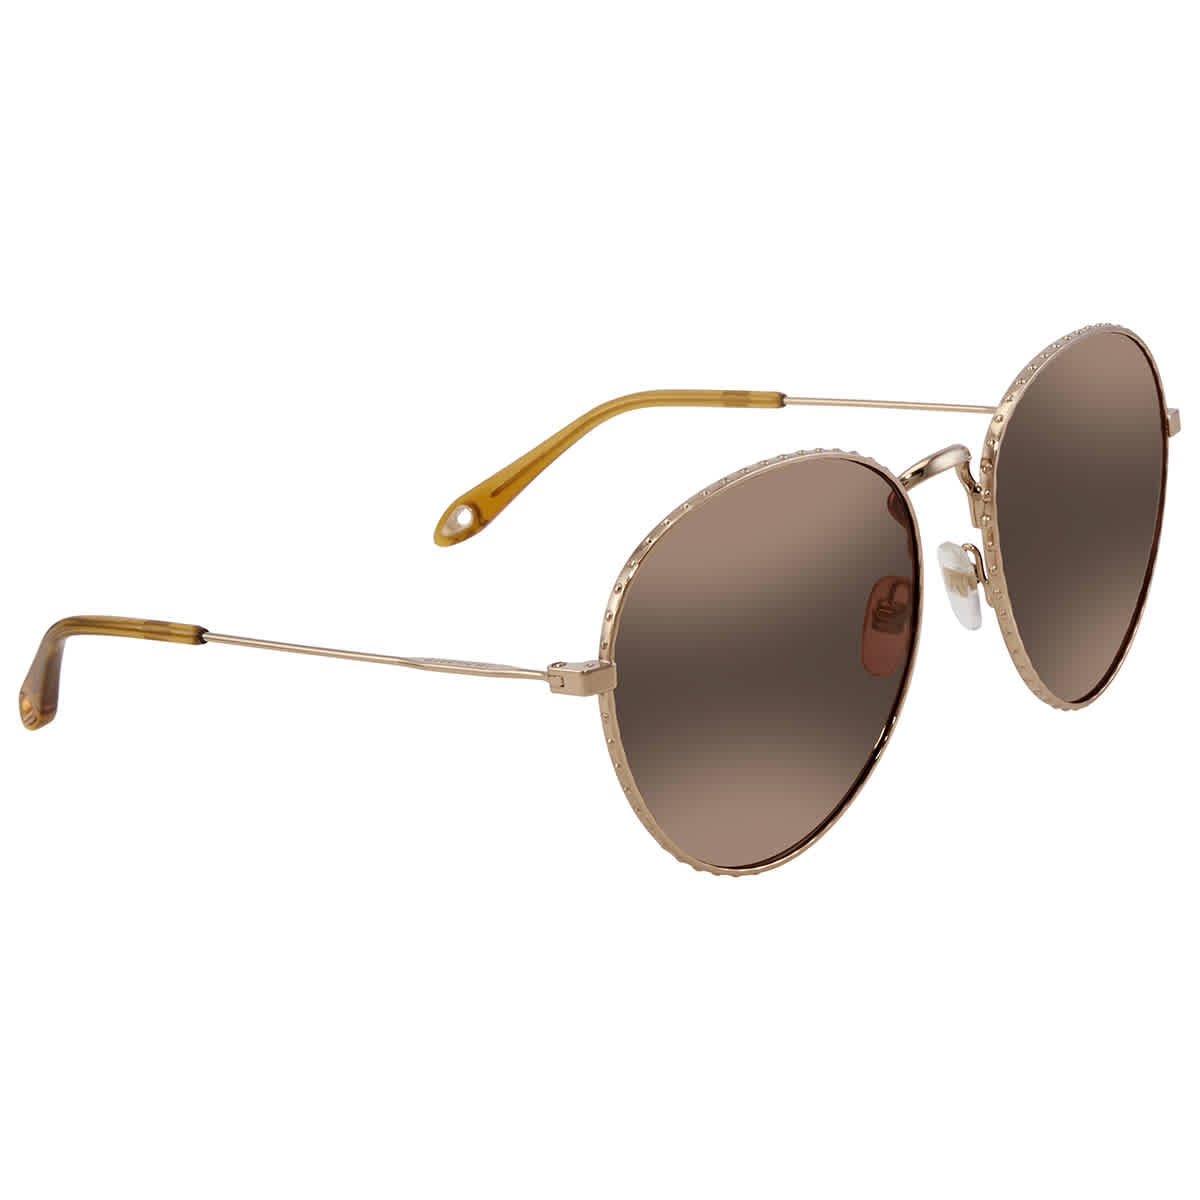 Givenchy Gold Mirror Round Sunglasses Gv7089s-006j-60 In Brown